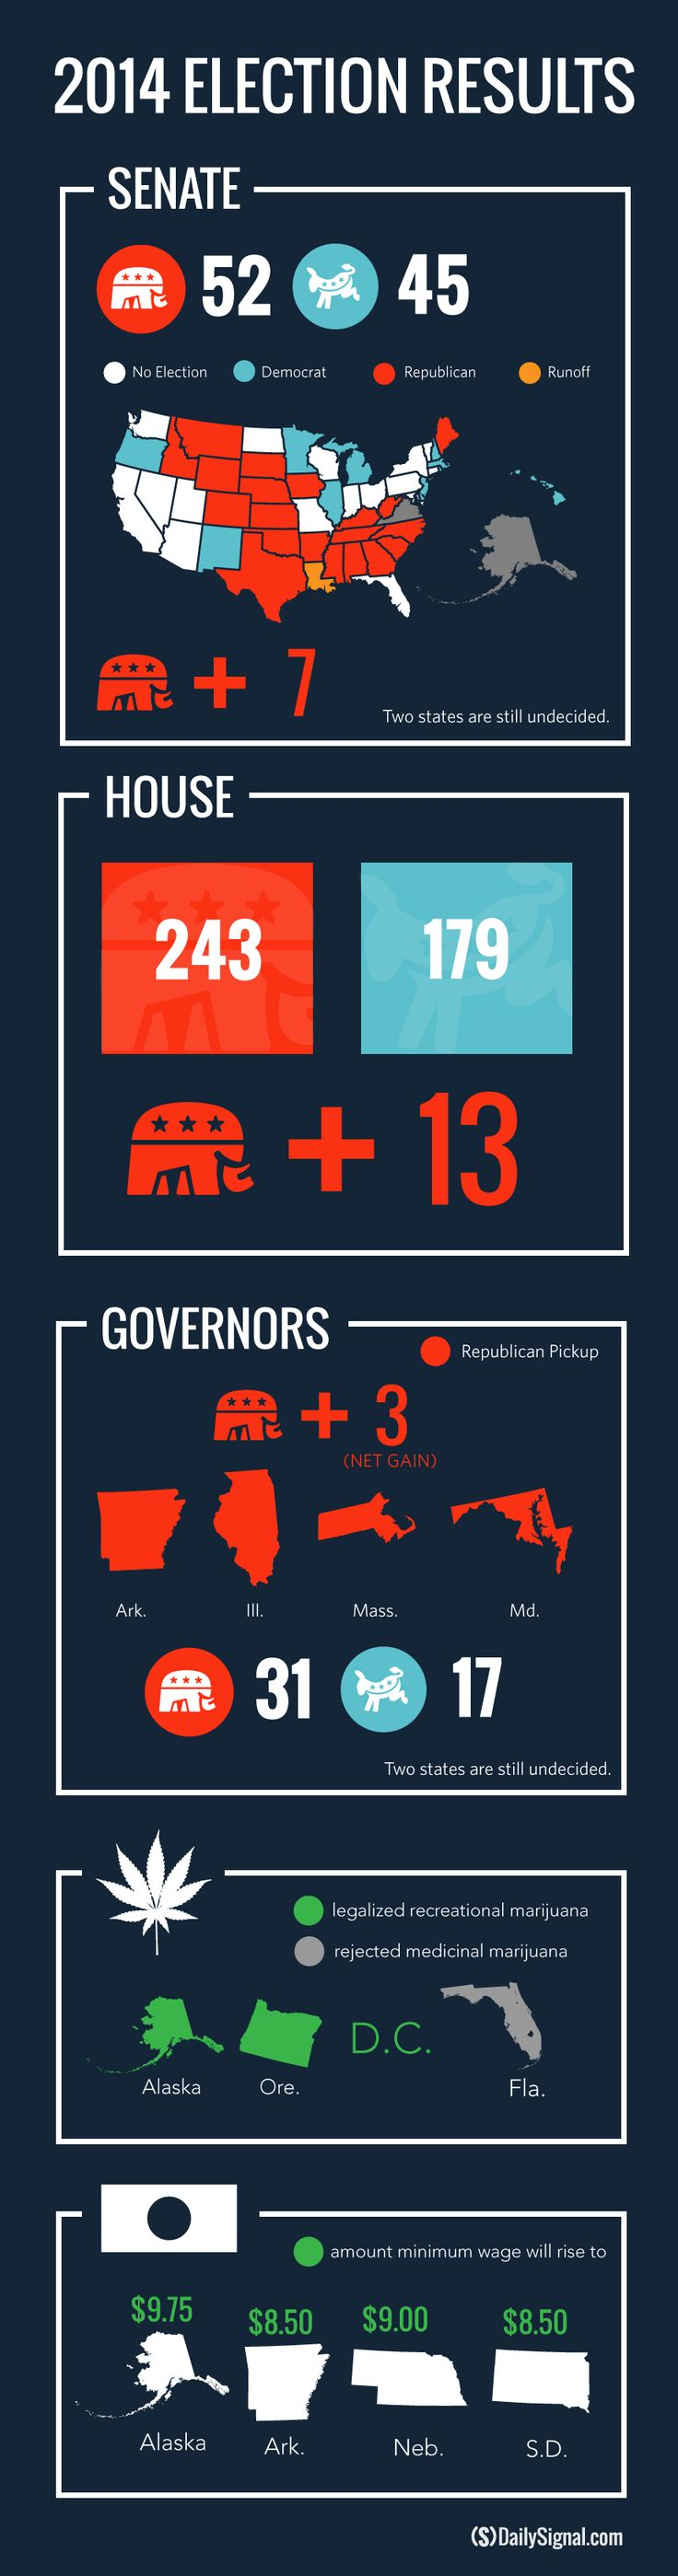 Republicans Swept the Midterm Elections. Here's What Comes Next.. Republicans' heady win on Election Day, in which they regained control of the U.S. Senate and increased their majority in the House, soon will give way... Read More